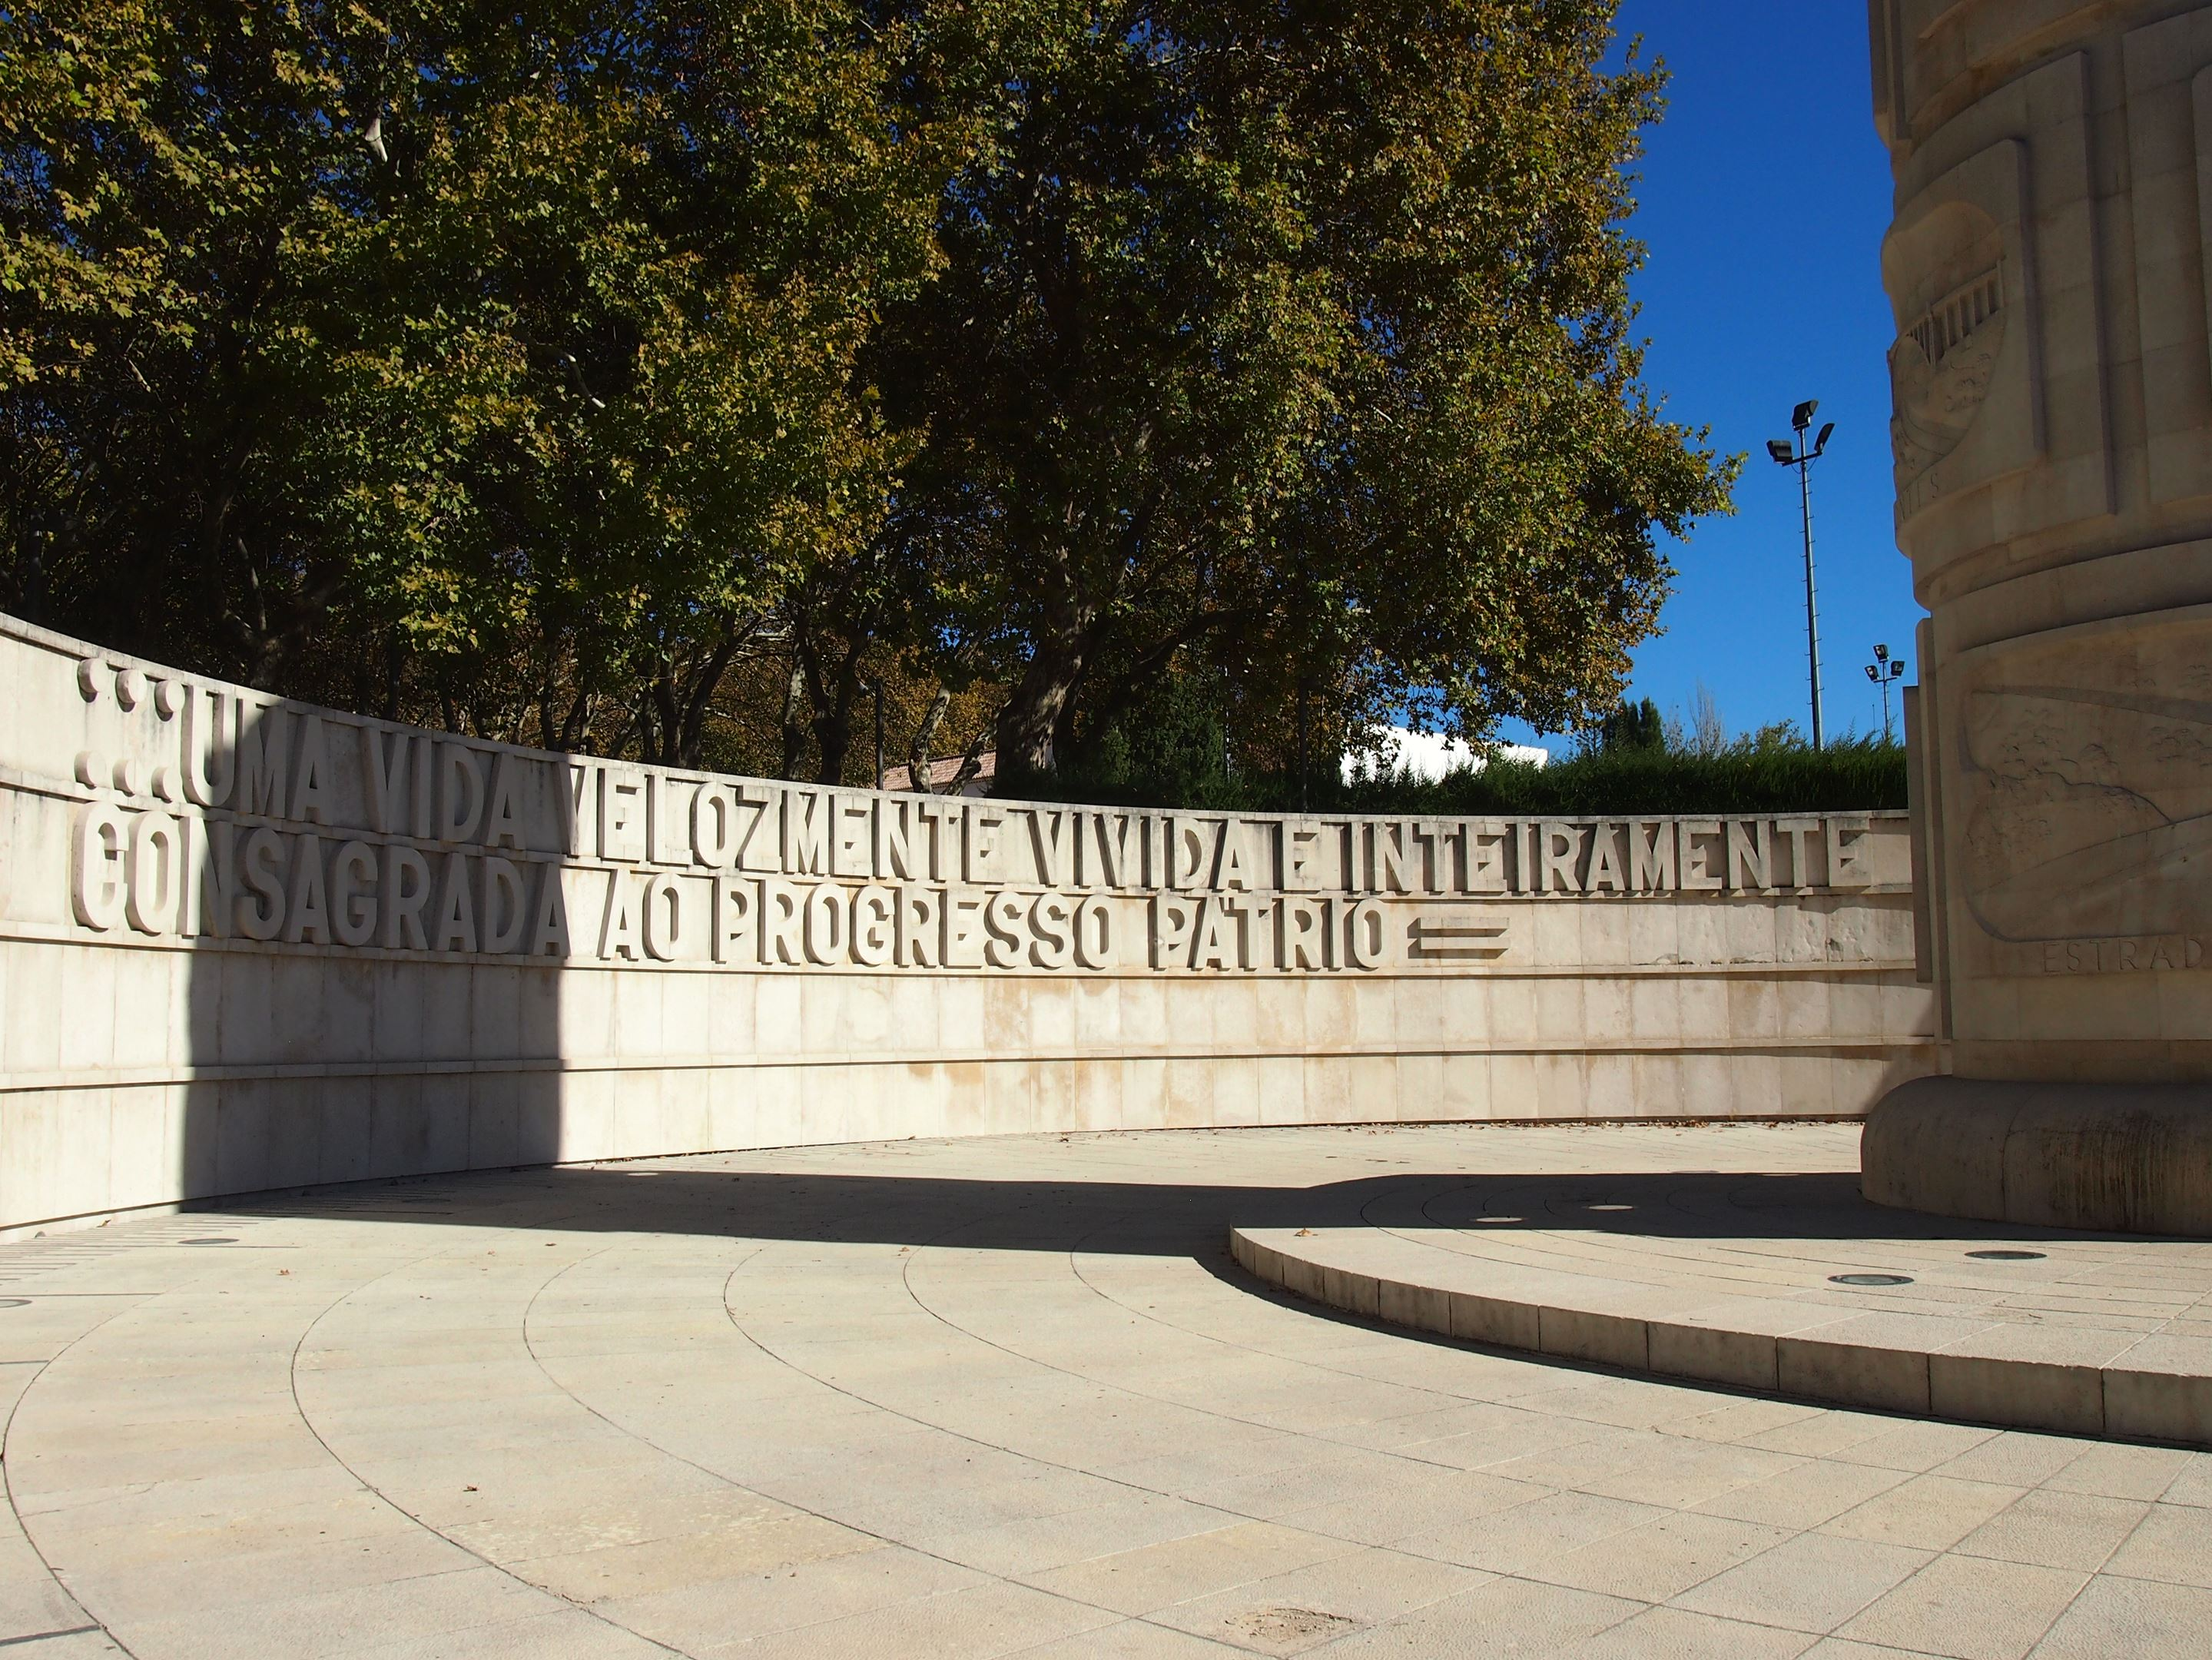 The entrance to Parque Municipal de Loulé (Loulé Municipal Park)